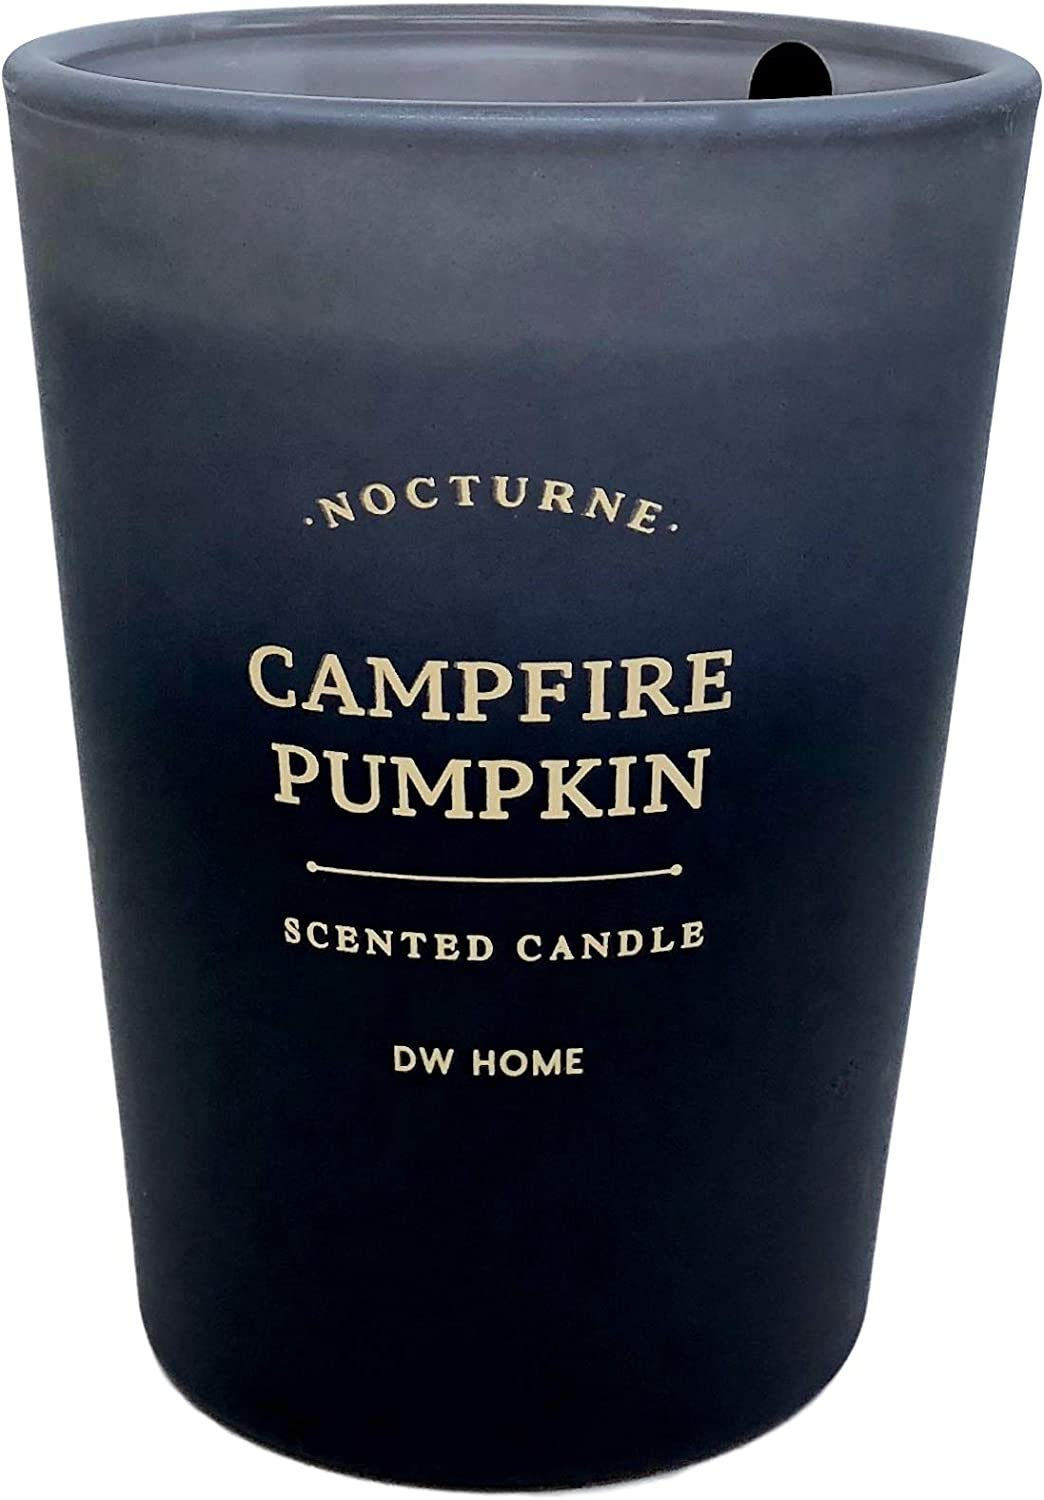 DW Home Nocturne Campfire Pumpkin Scented Candle